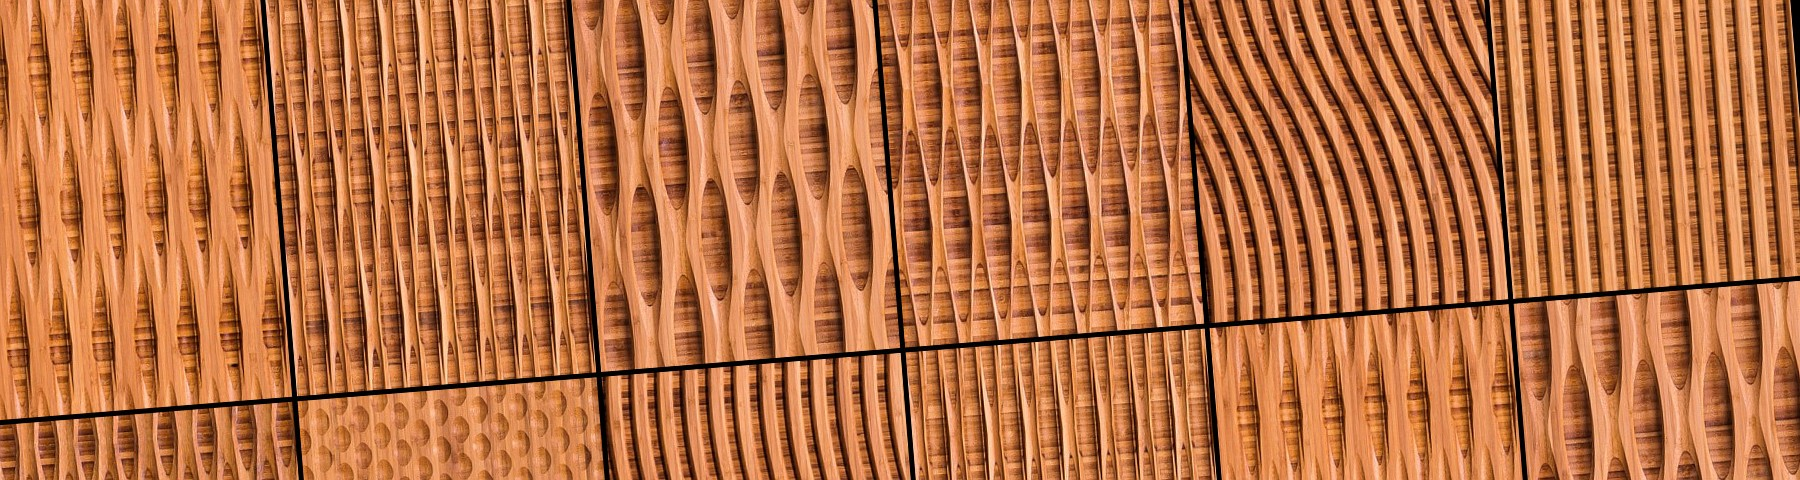 Bamboo carved acoustic wall panels